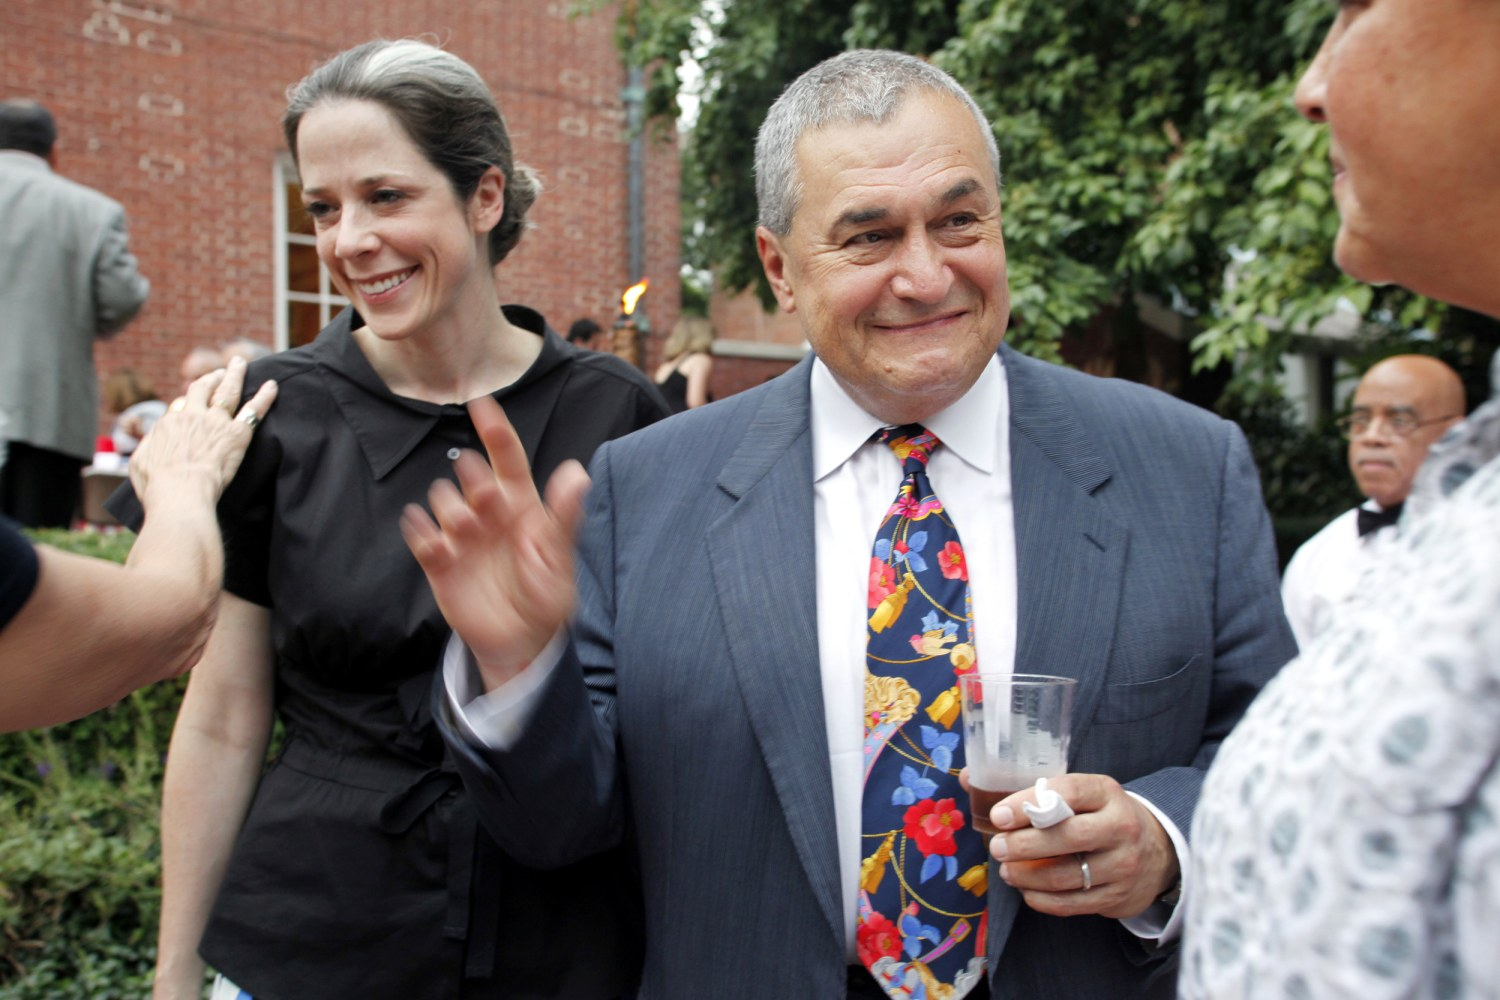 Tony Podesta Resignation Follows String of Foreign Lobbying Disclosure Violations